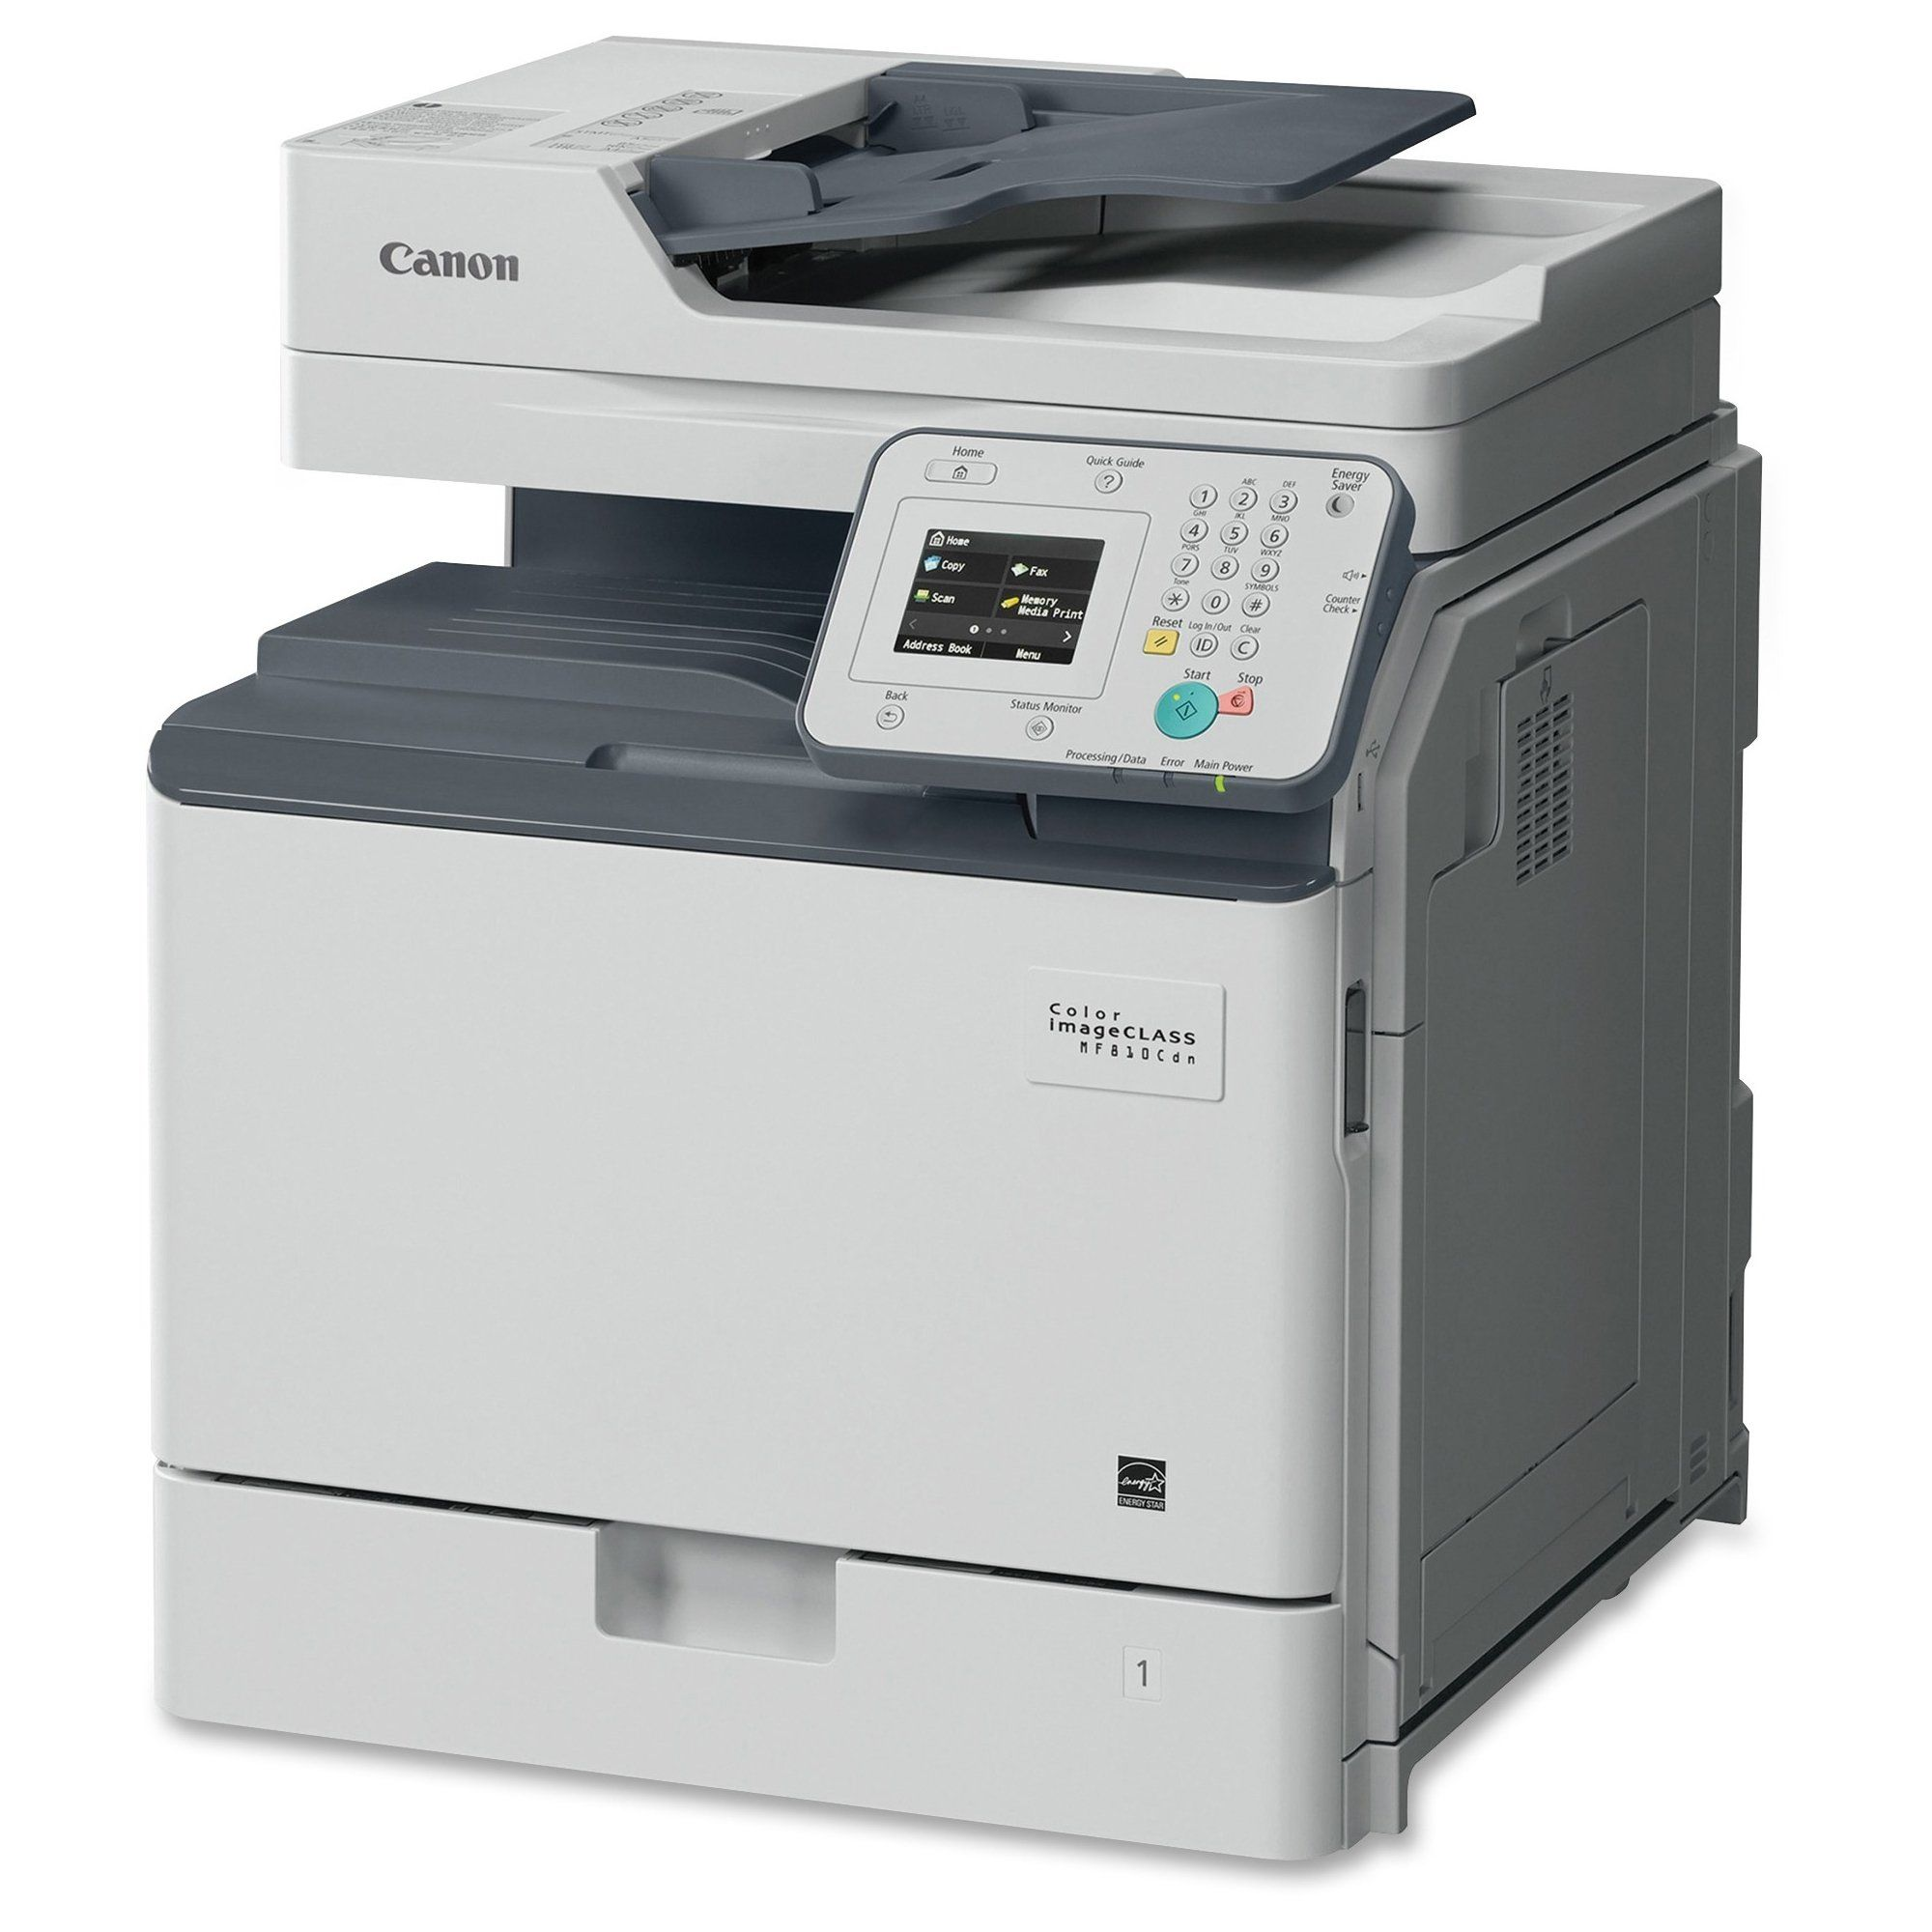 CANON IMAGECLASS MF9220CDN MFP FAX DRIVERS FOR MAC DOWNLOAD